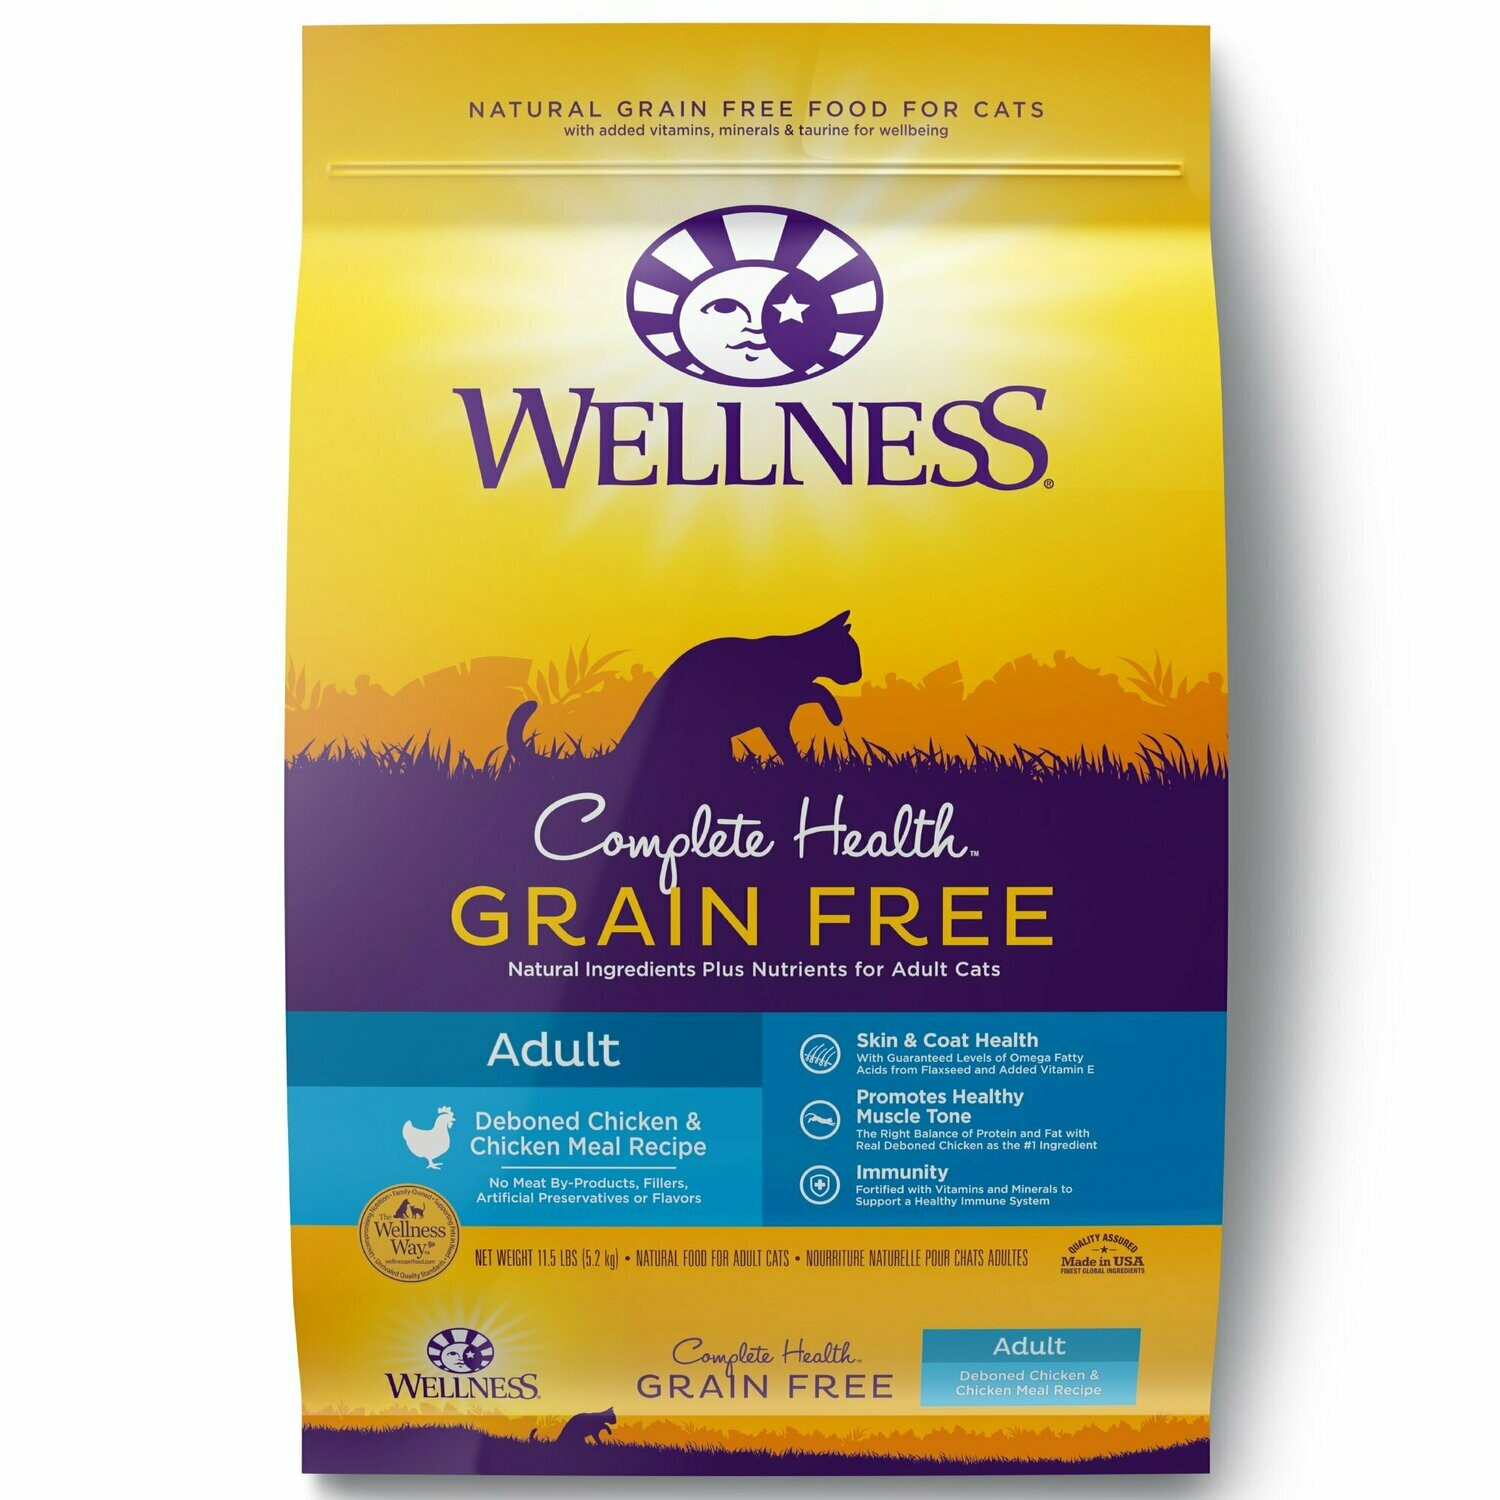 Wellness grain-free food for cats deboned chicken and chicken meal recipe adult cats 11.5 pounds (4/20)